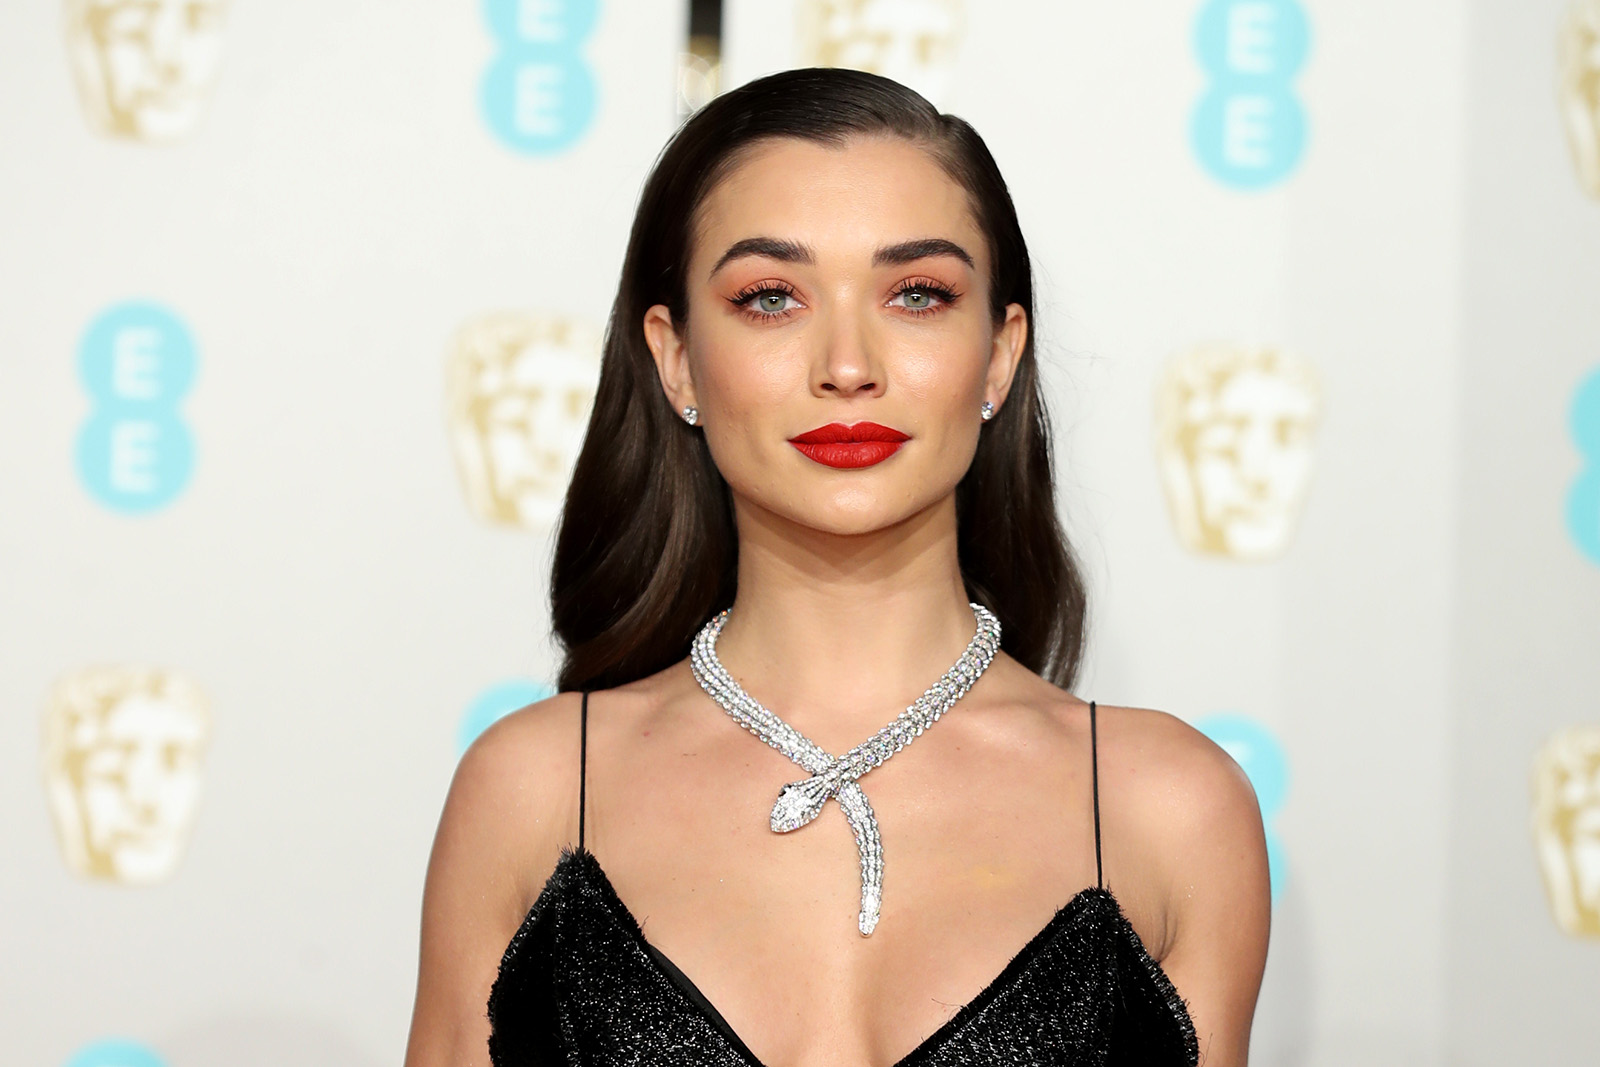 Amy Jackson at the 2019 BAFTA awards wearing Bulgari 'Serpenti' necklace with 74.78ct diamonds in white gold